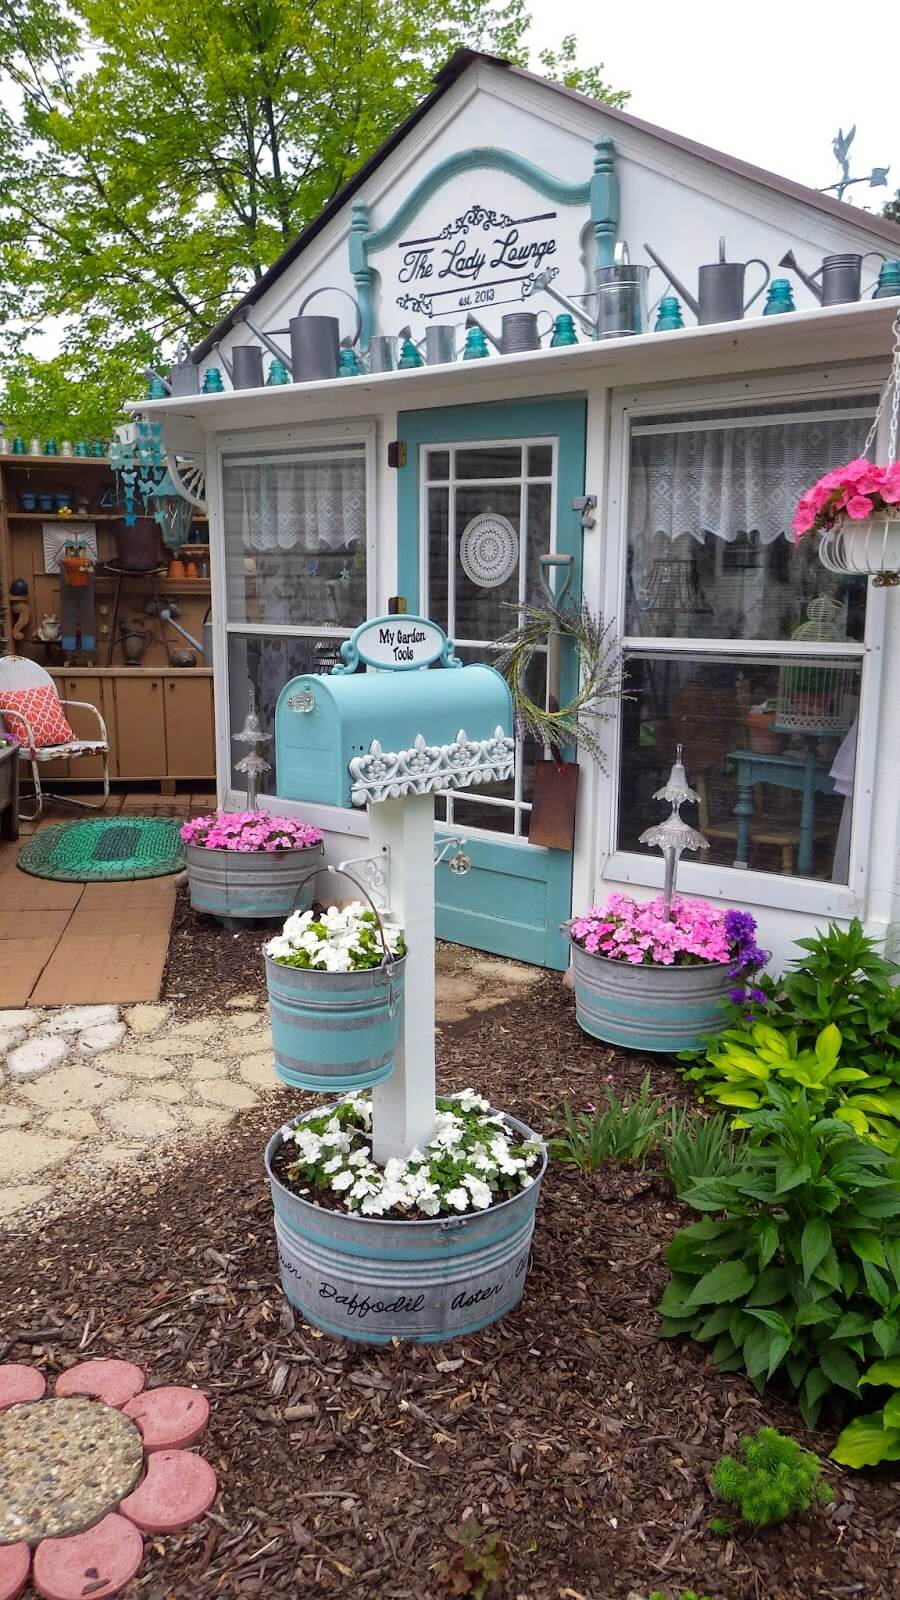 Lady Lounge with Mailbox in Teal & White